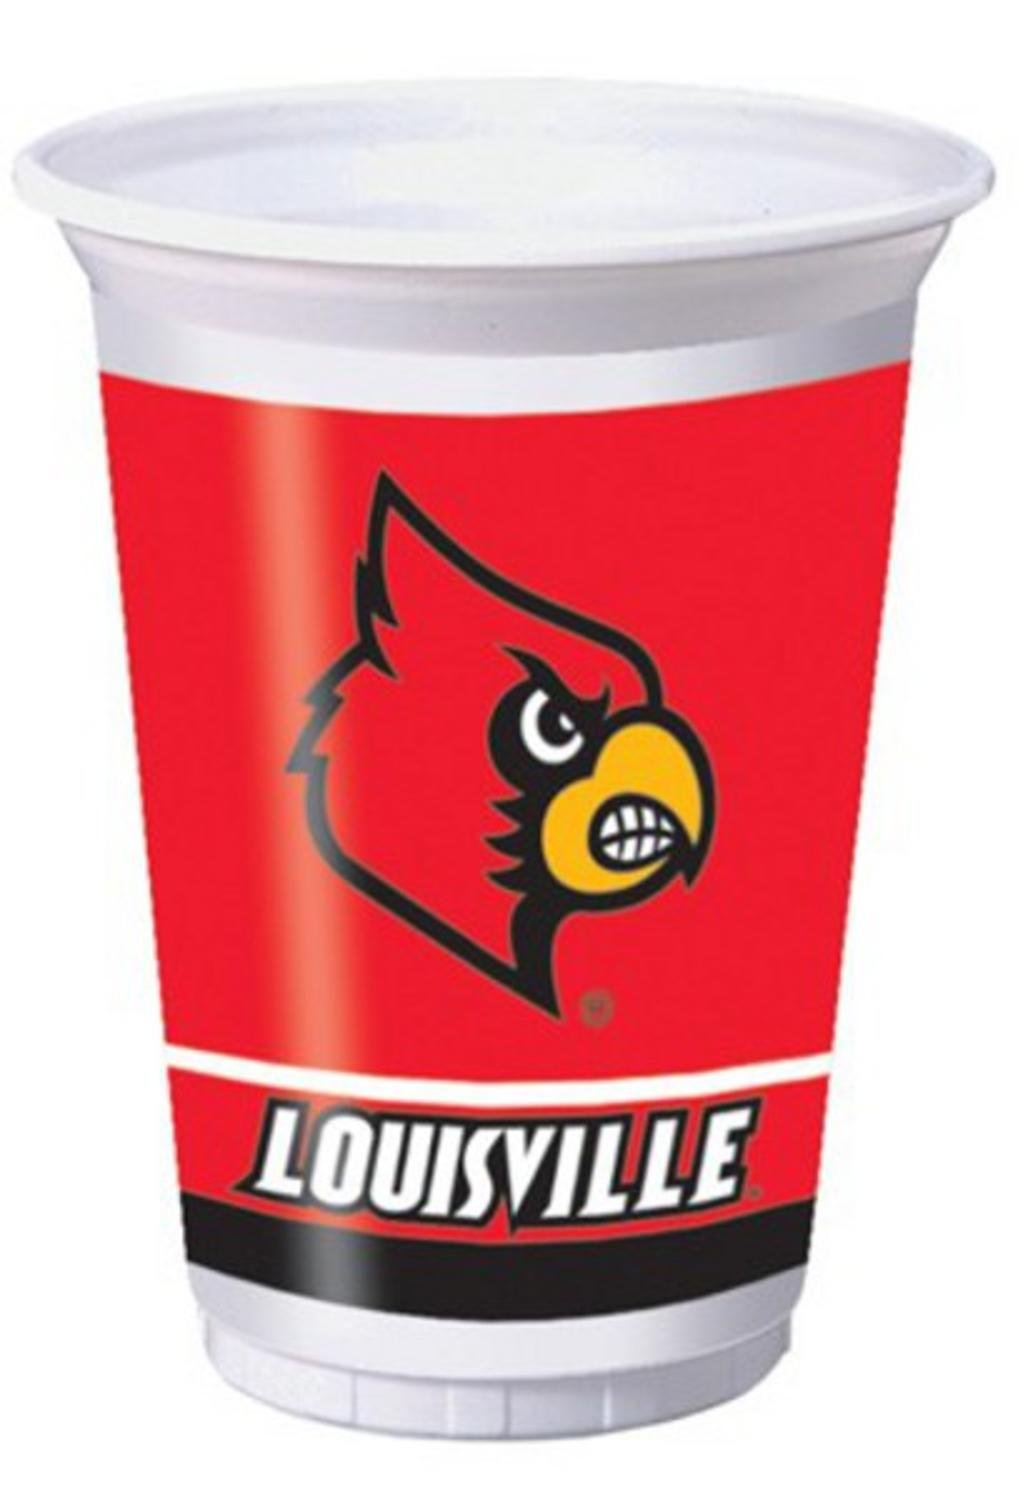 96 NCAA Louisville Cardinals Plastic Drinking Tailgate Party Cups - 20 Ounces